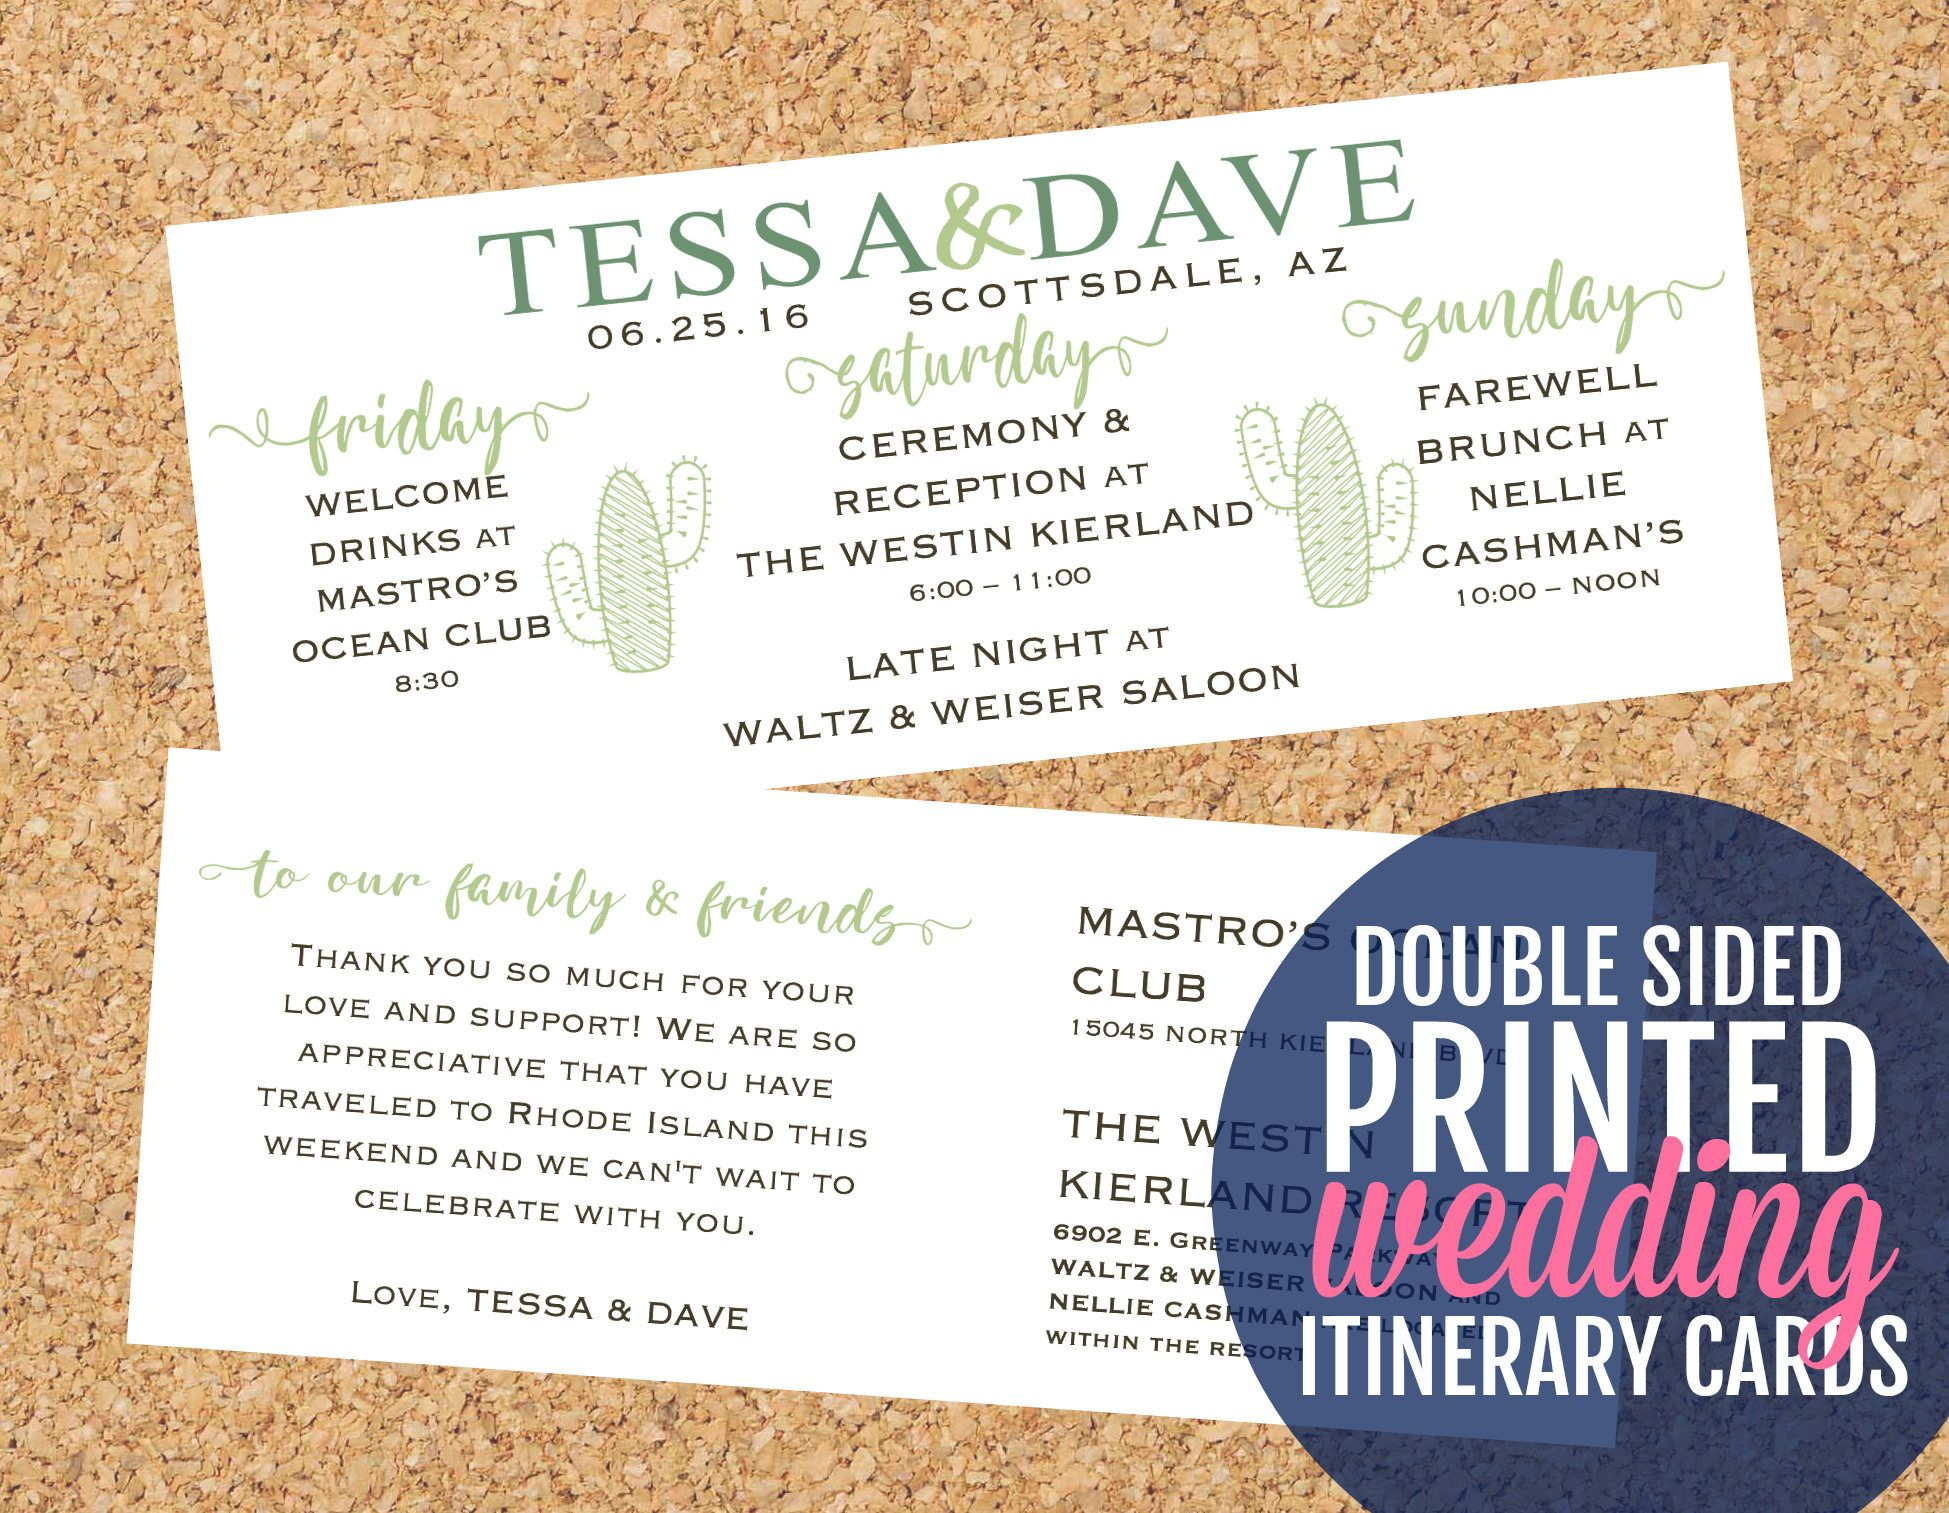 Cactus Wedding Itinerary Cards Double Sided Southwest Timeline Welcome Bag Inserts